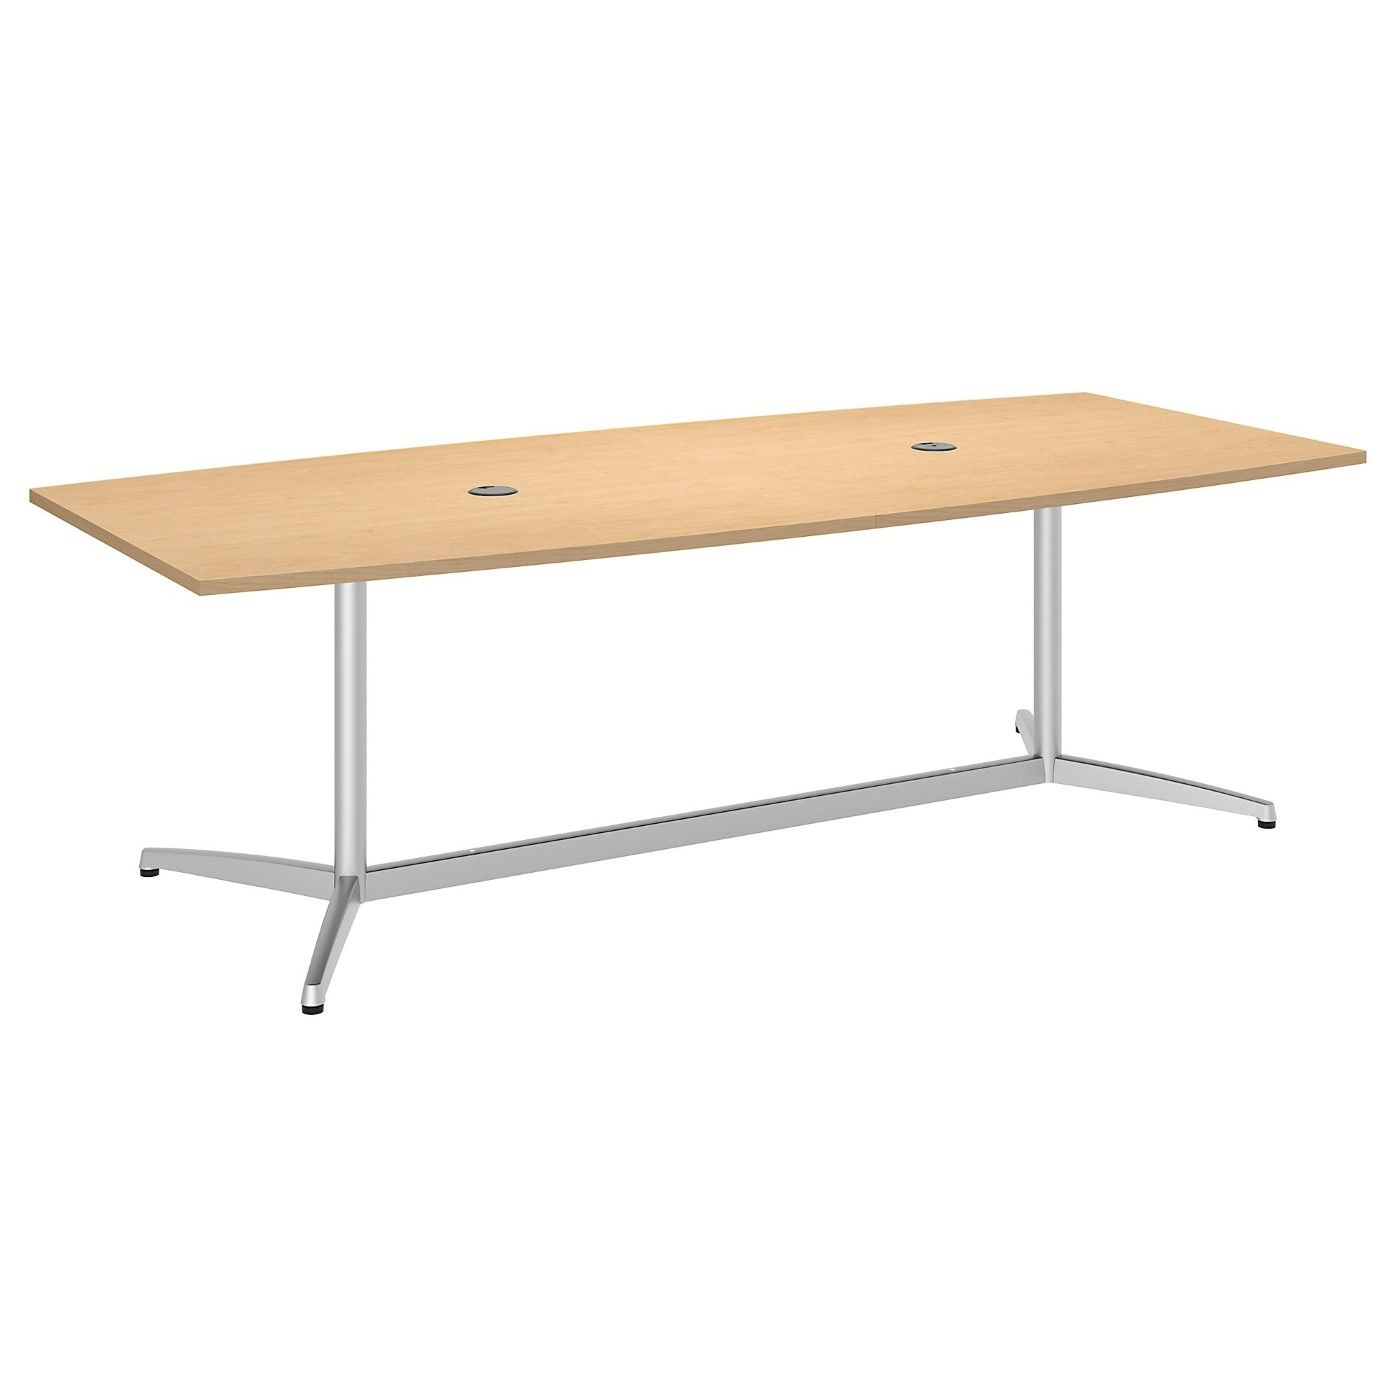 BUSH BUSINESS FURNITURE 96W X 42D BOAT SHAPED CONFERENCE TABLE WITH METAL BASE. FREE SHIPPING